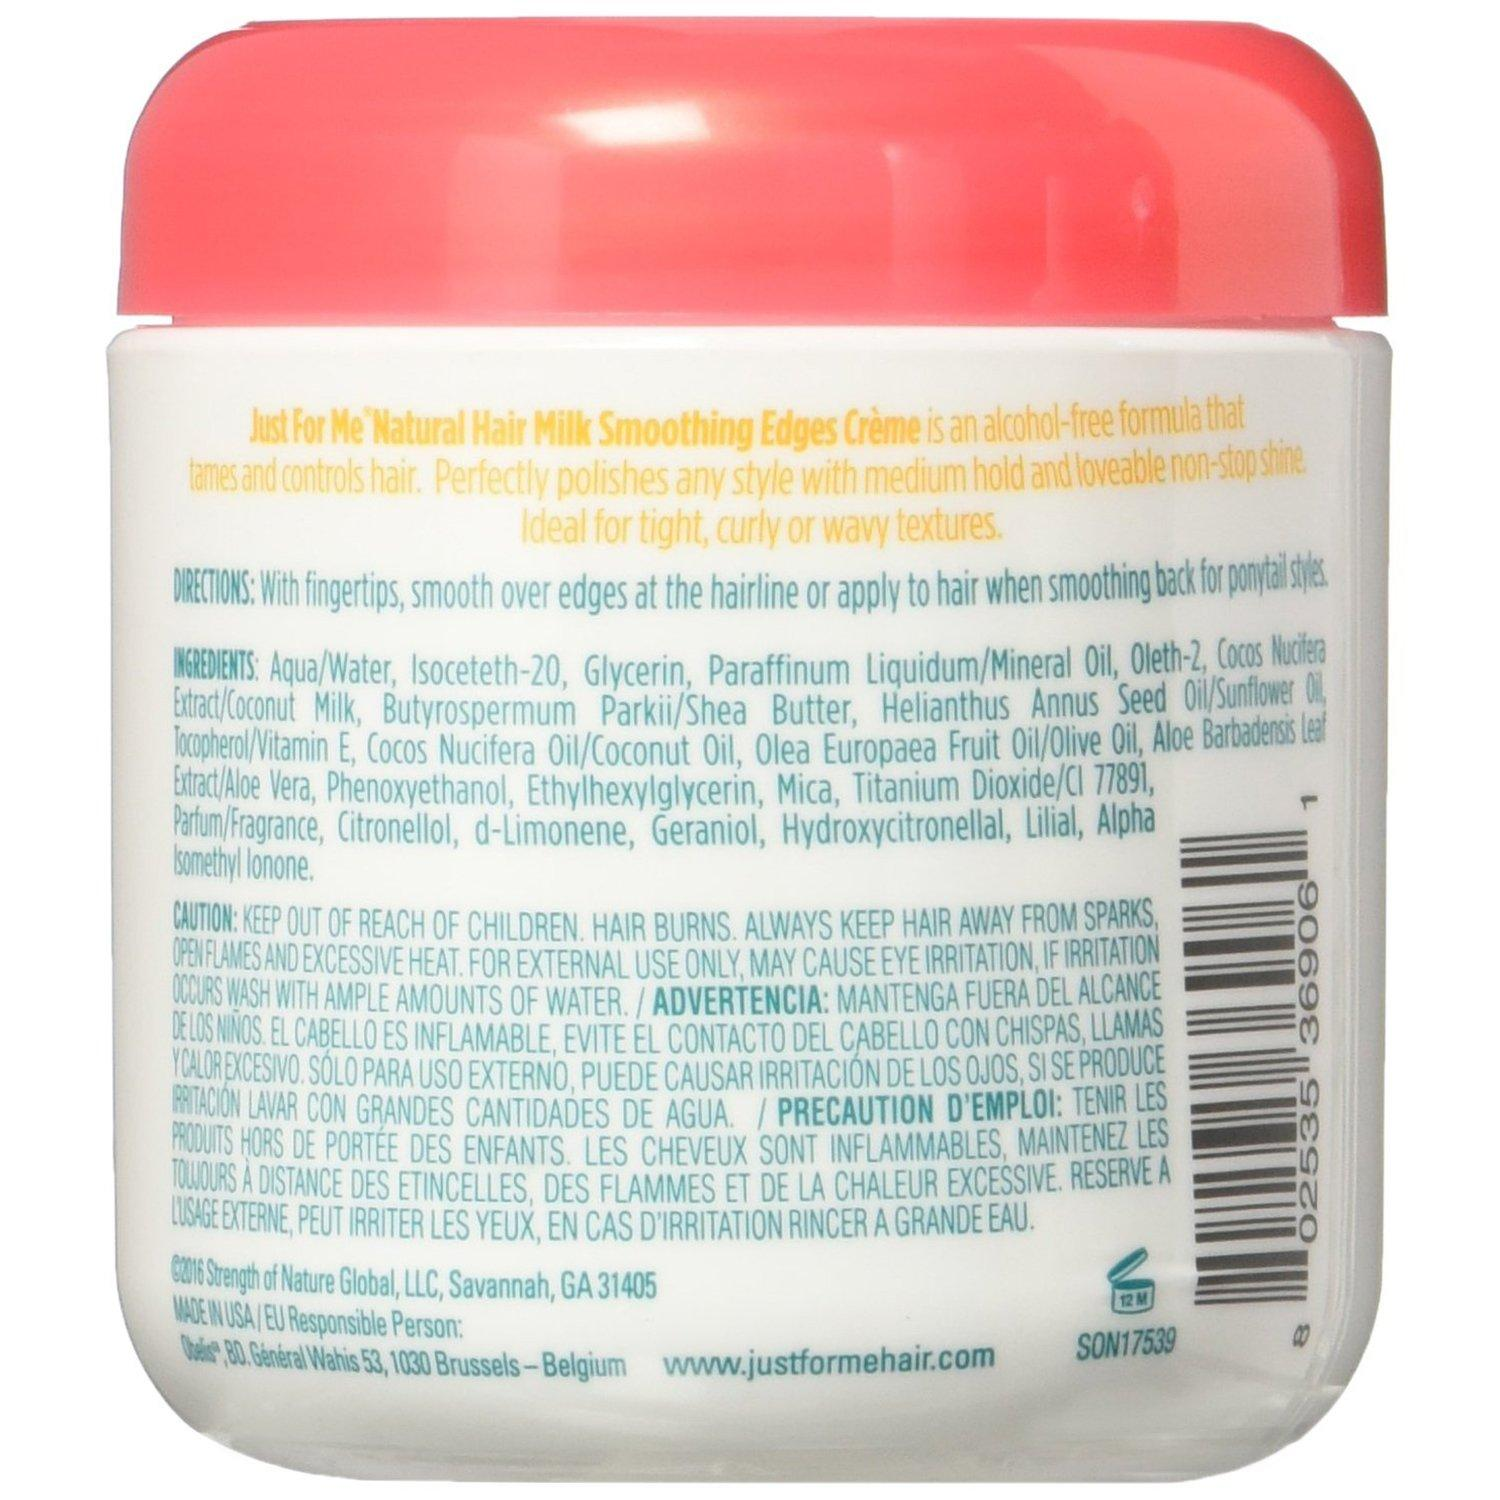 Just For Me Hair Milk Smoothing Edges Creme Hair Styler, 4 oz